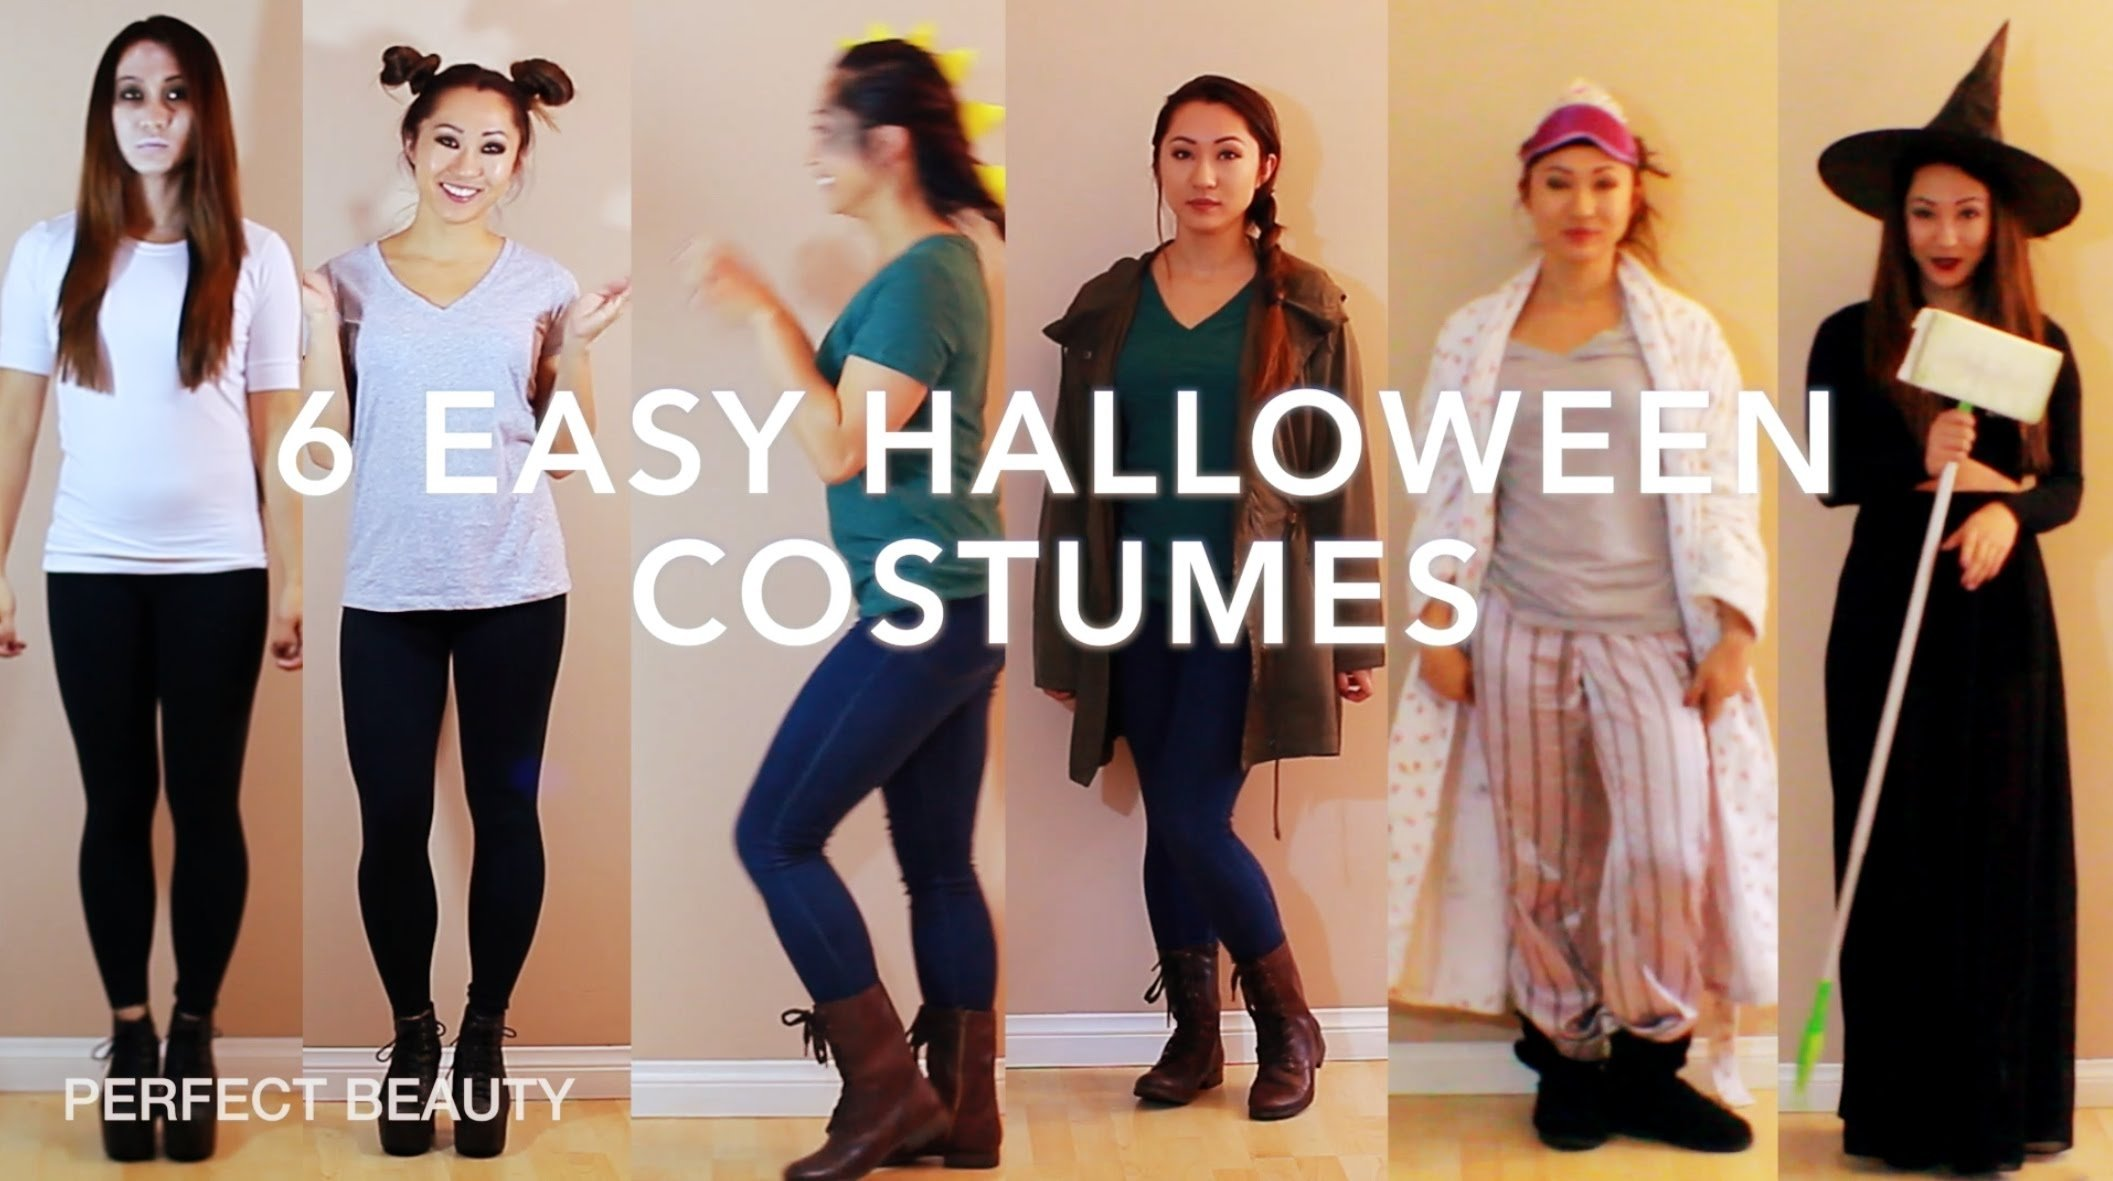 10 Stunning Last Minute Costume Ideas For Women last minute diy halloween costume ideas perfect beauty youtube 12